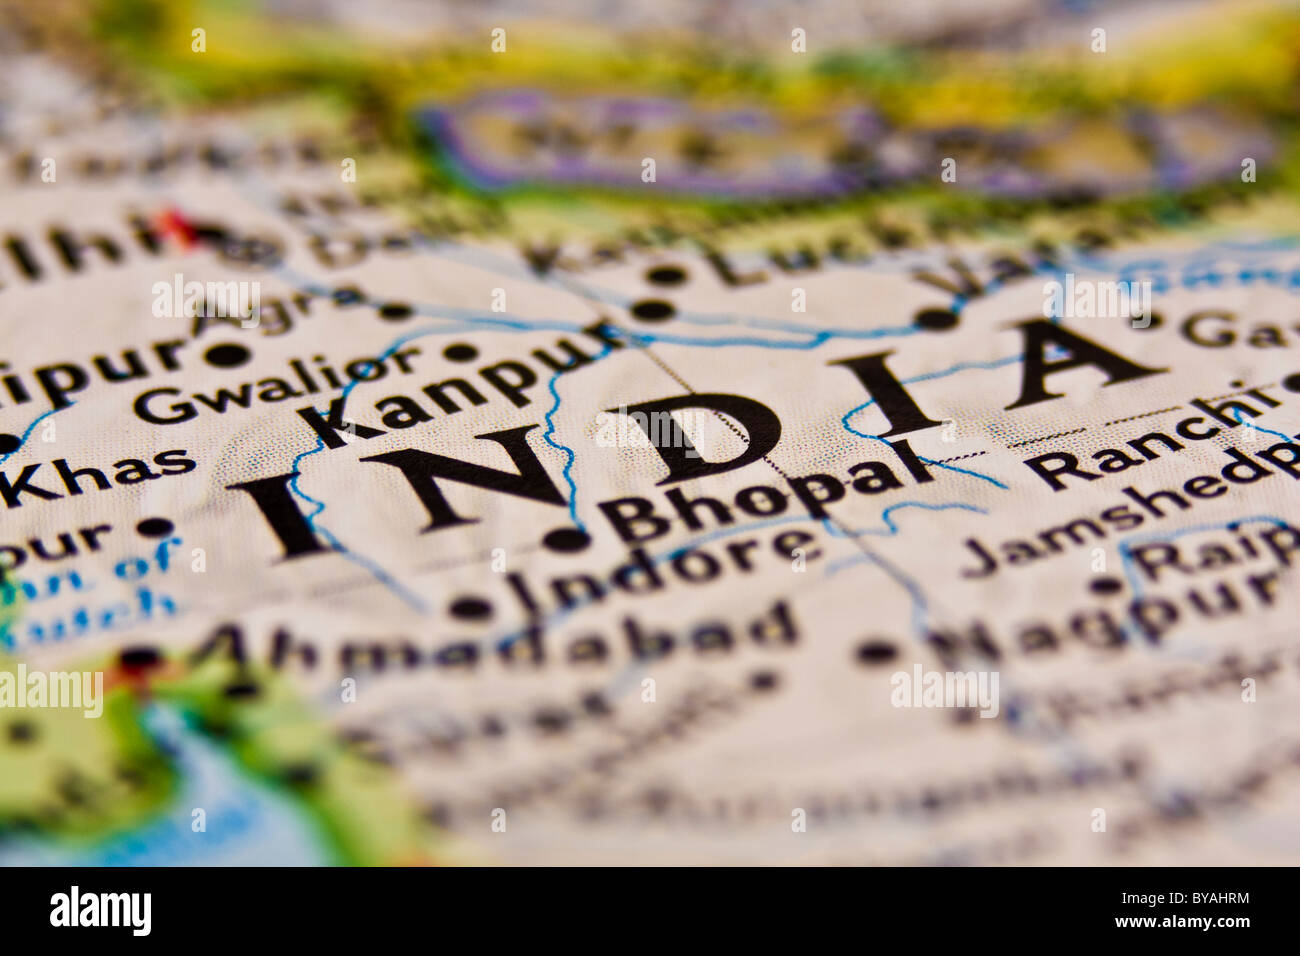 India on the Map. - Stock Image